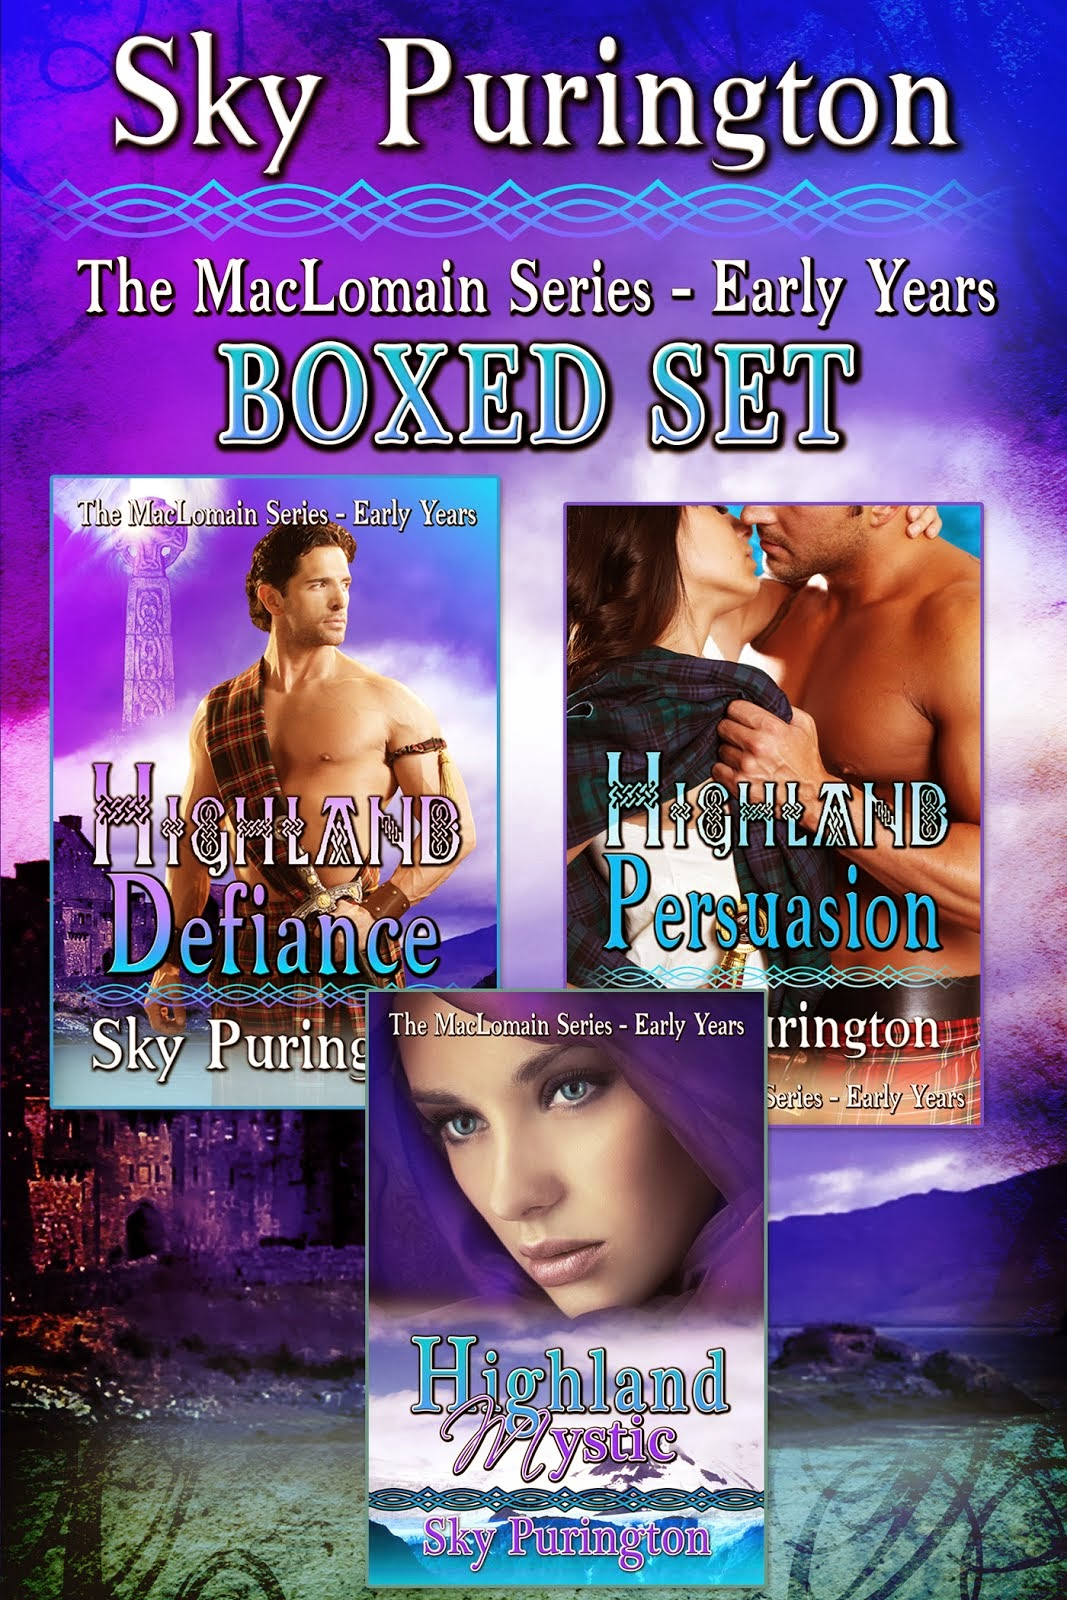 The MacLomain Series- Early Years Boxed Set